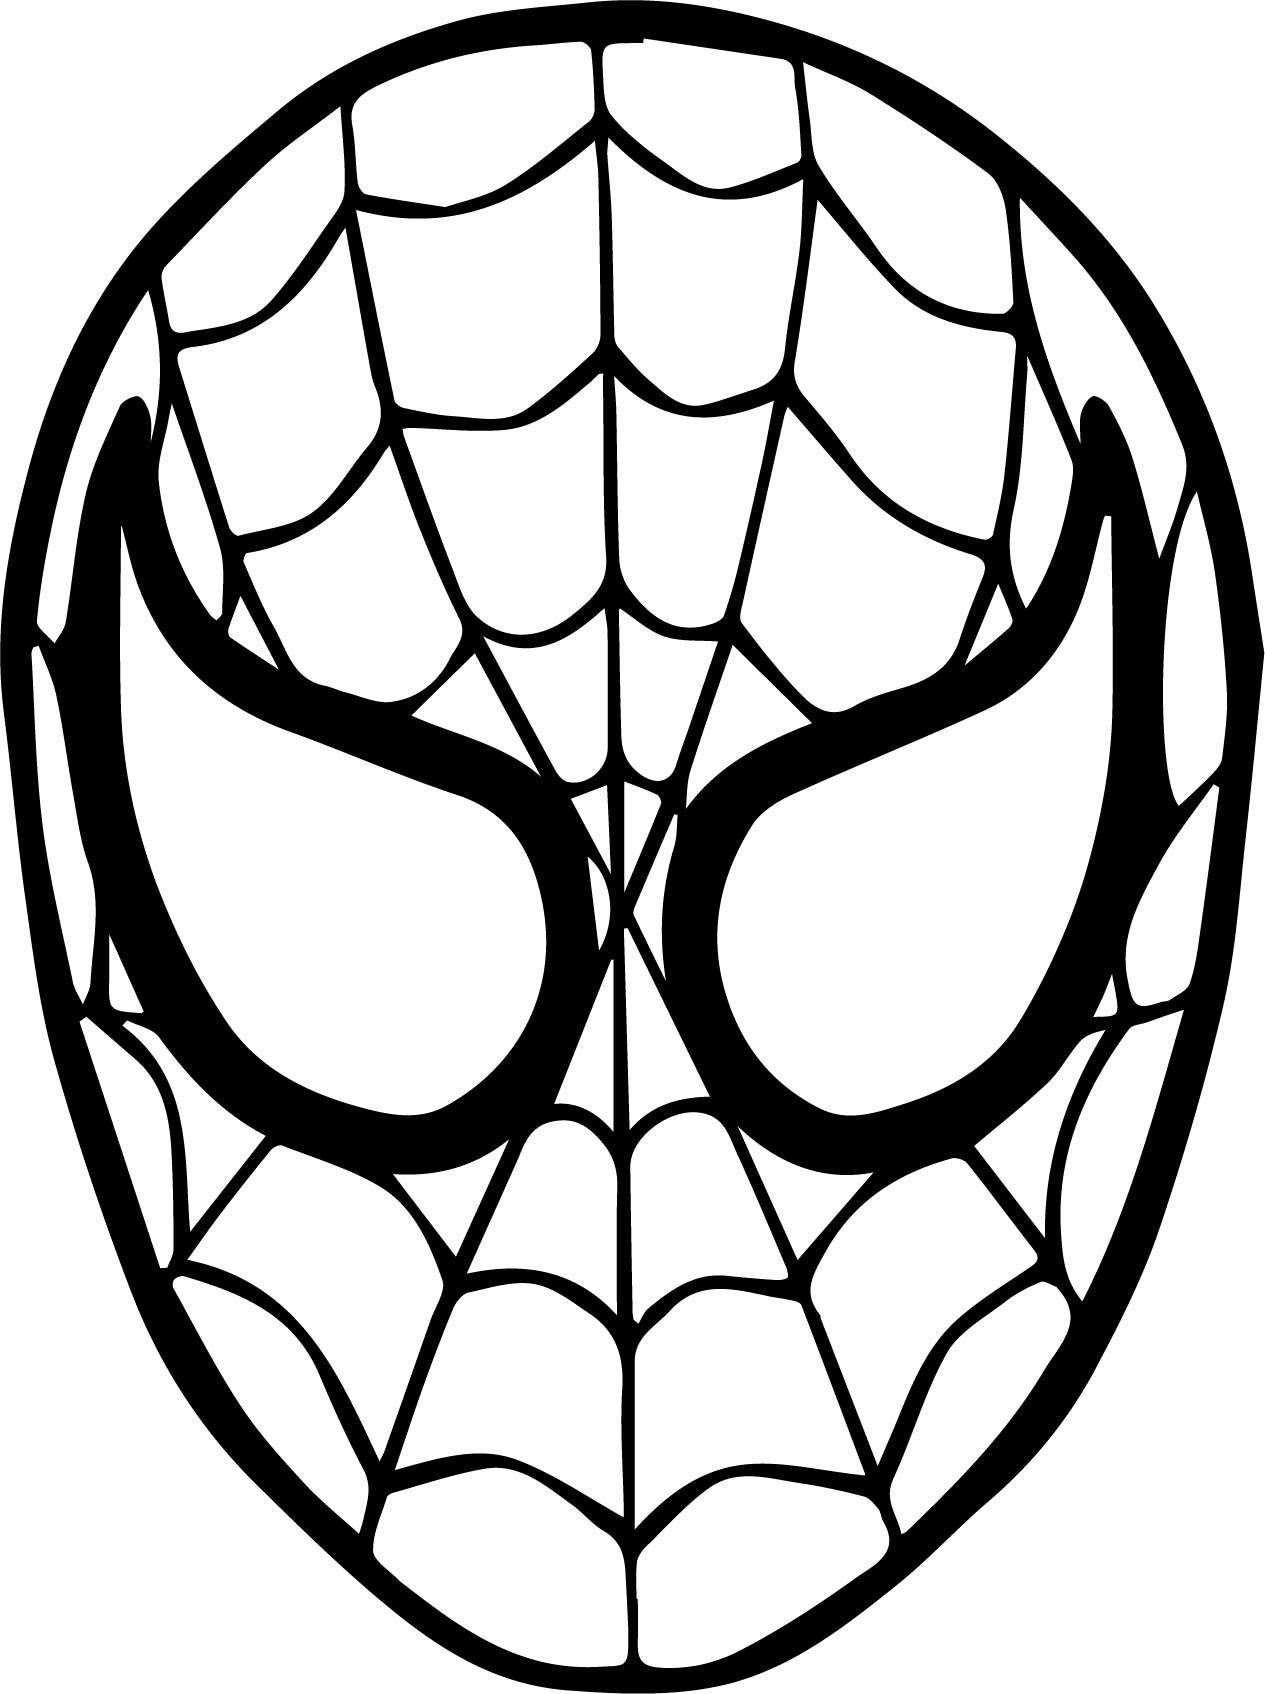 Spider man mask face coloring page for Spiderman coloring book pages